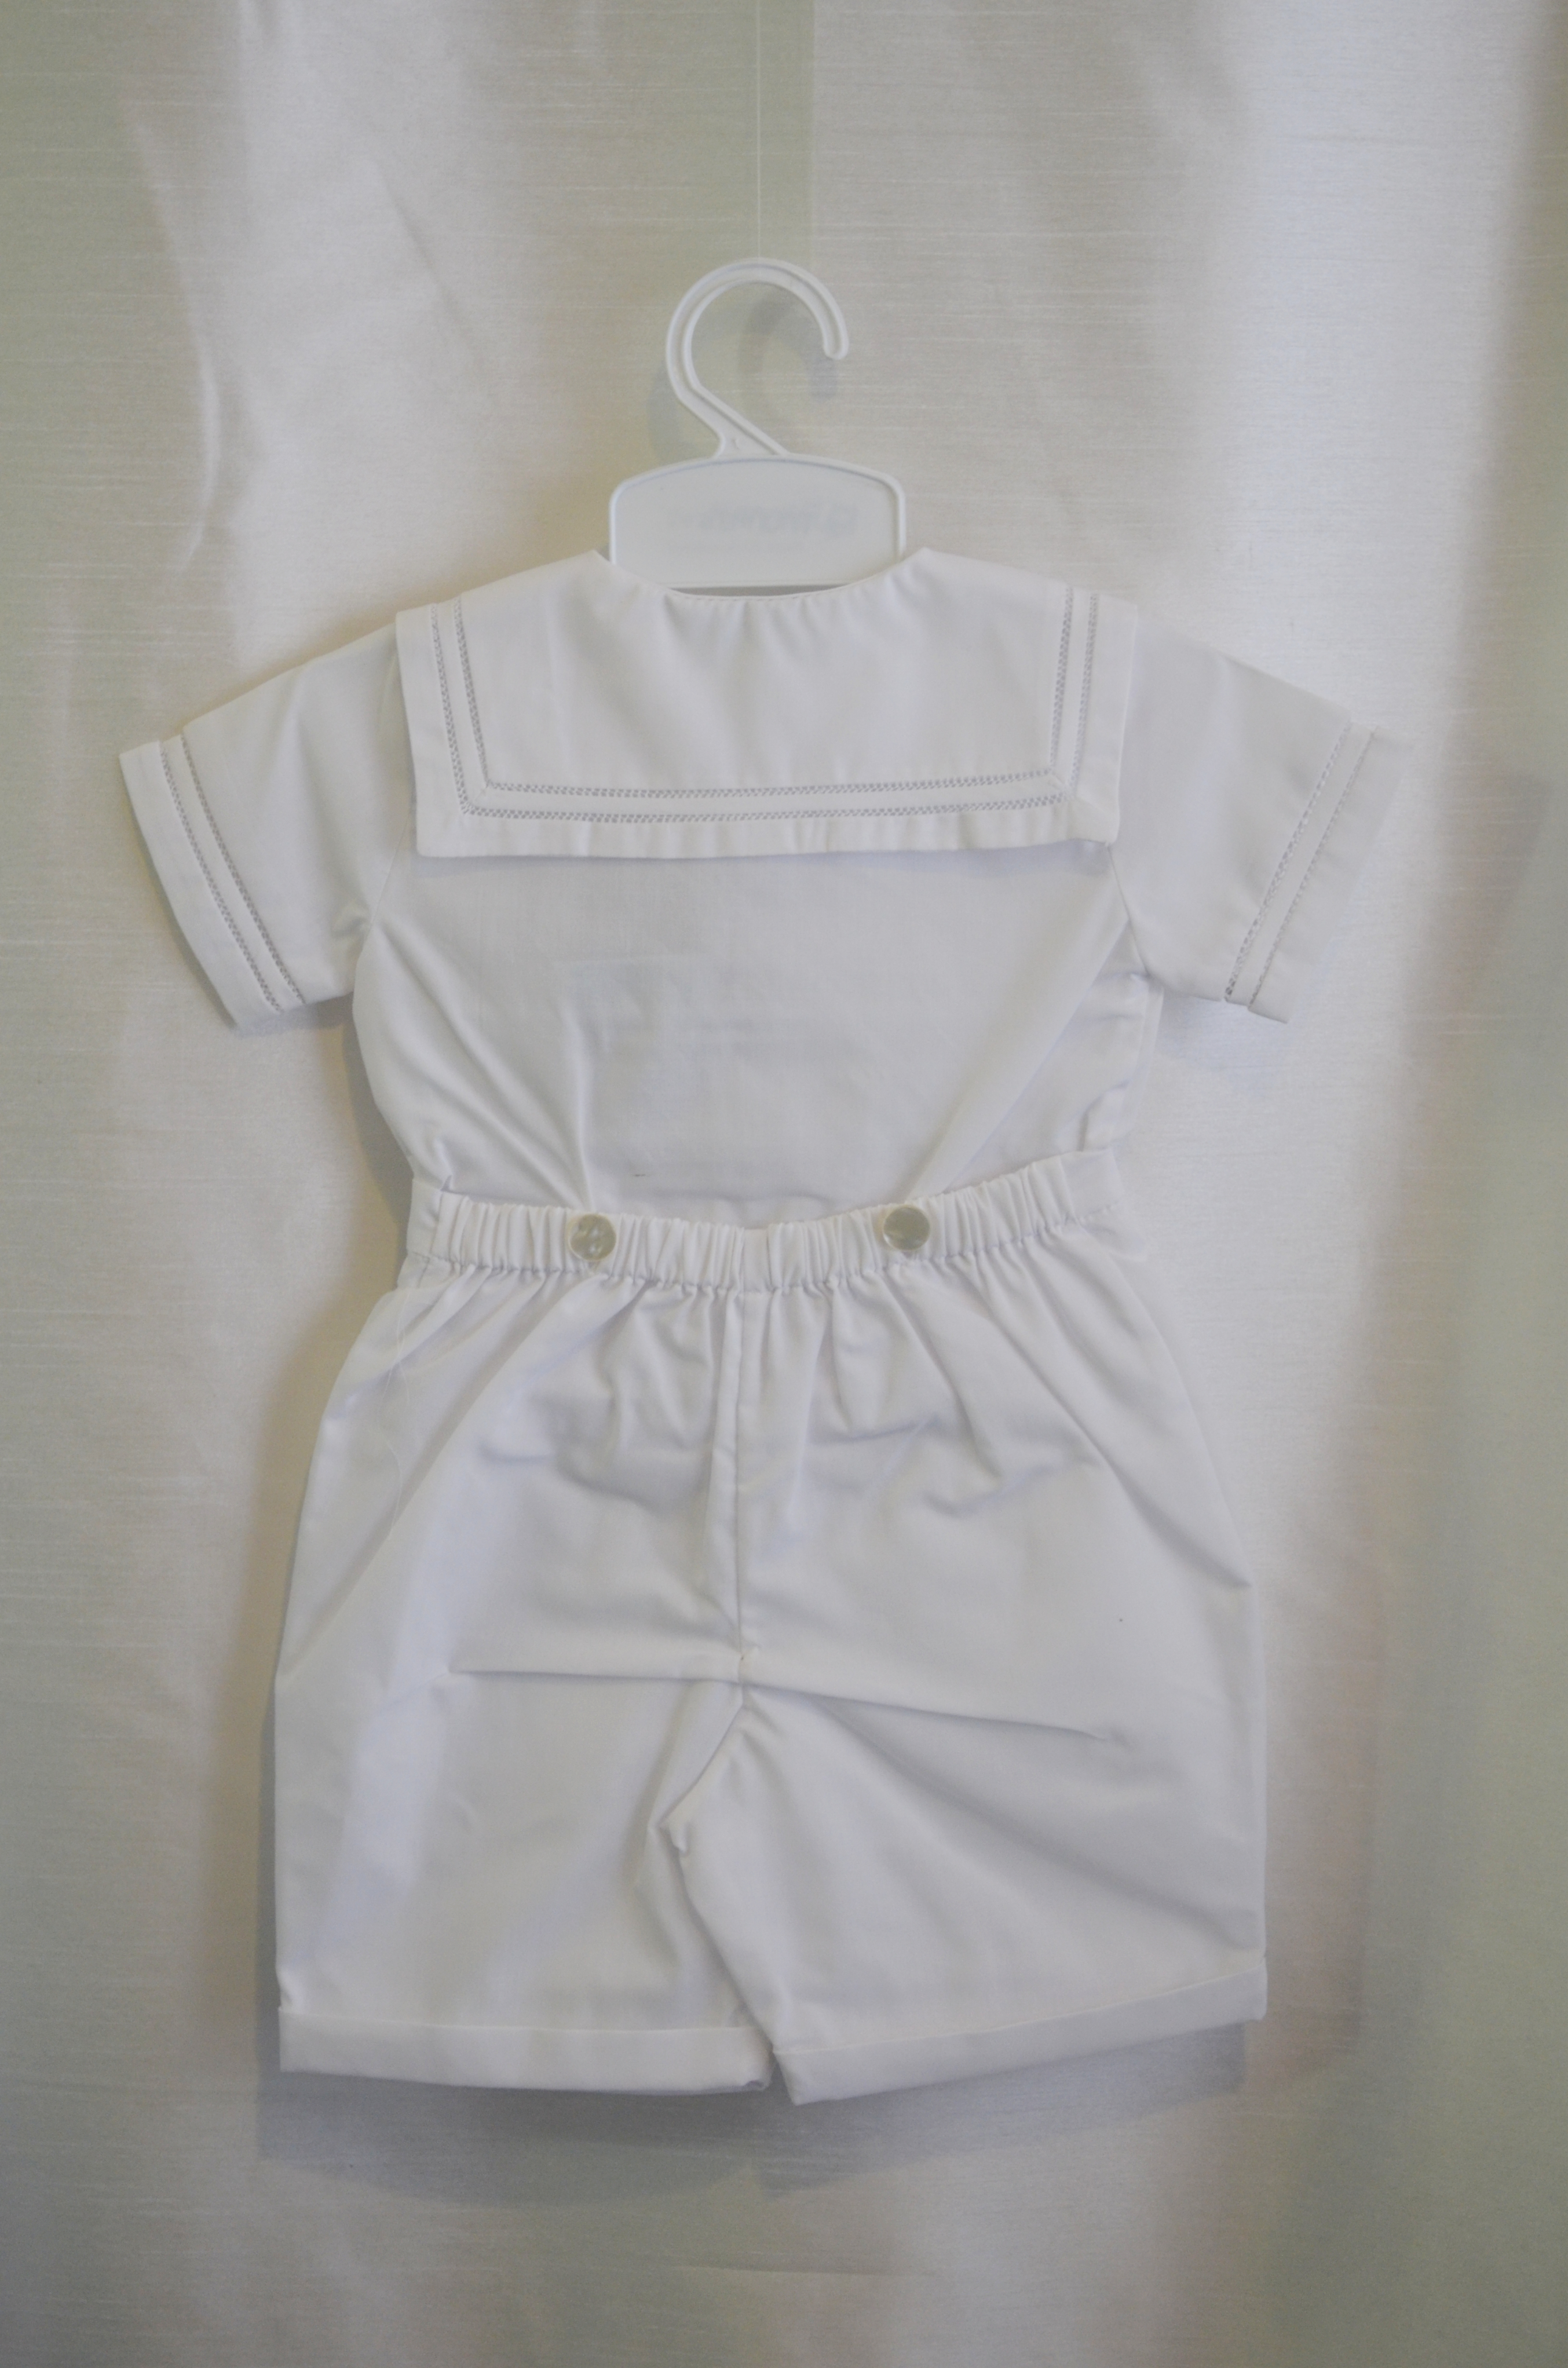 Boys Summer 12 M. Baptism Outfit w/ Front Tie